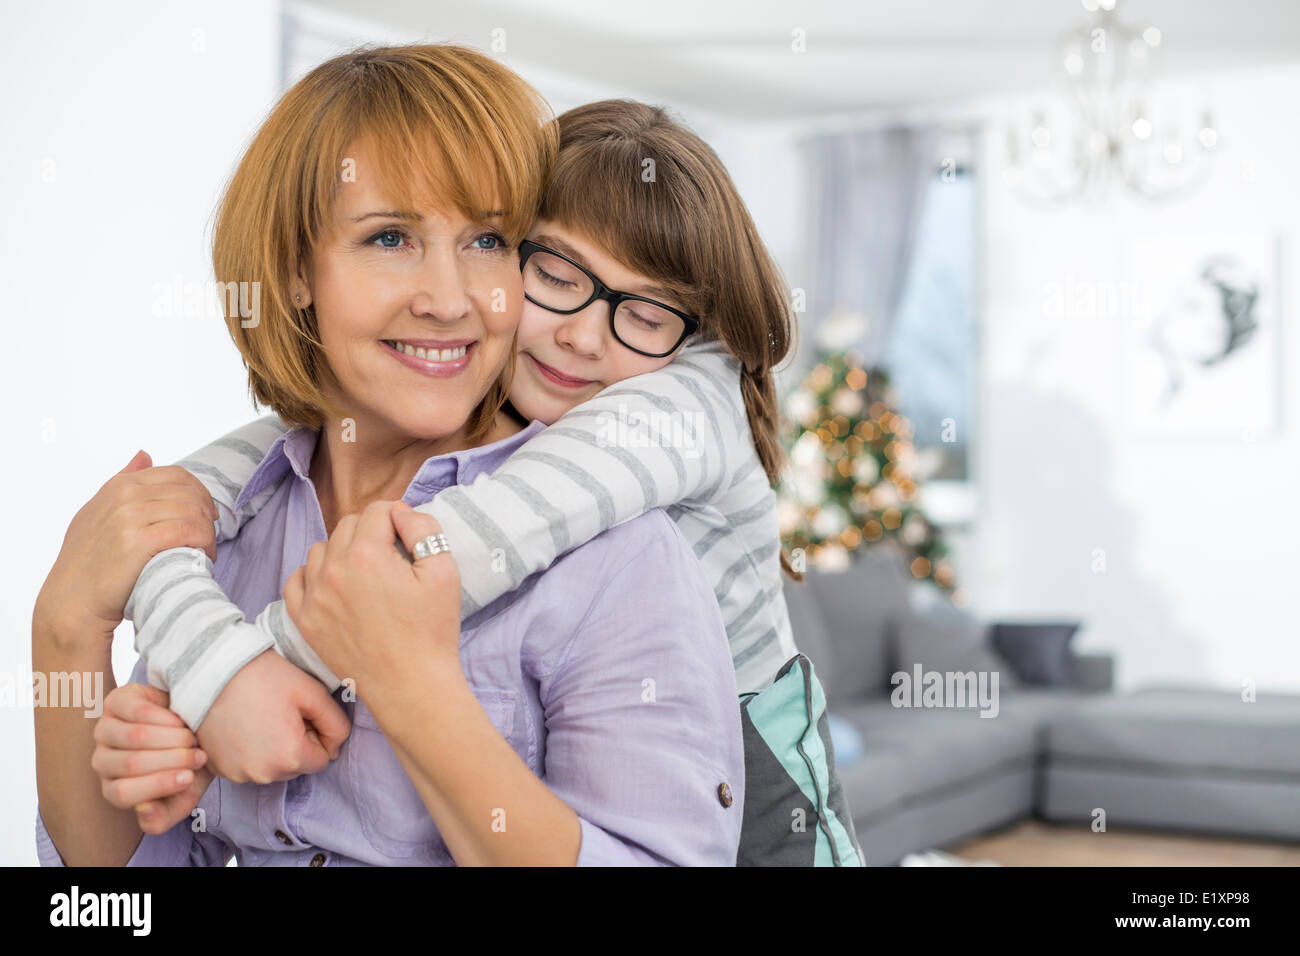 loving daughter embracing mother at home stock photo 70044388 alamy